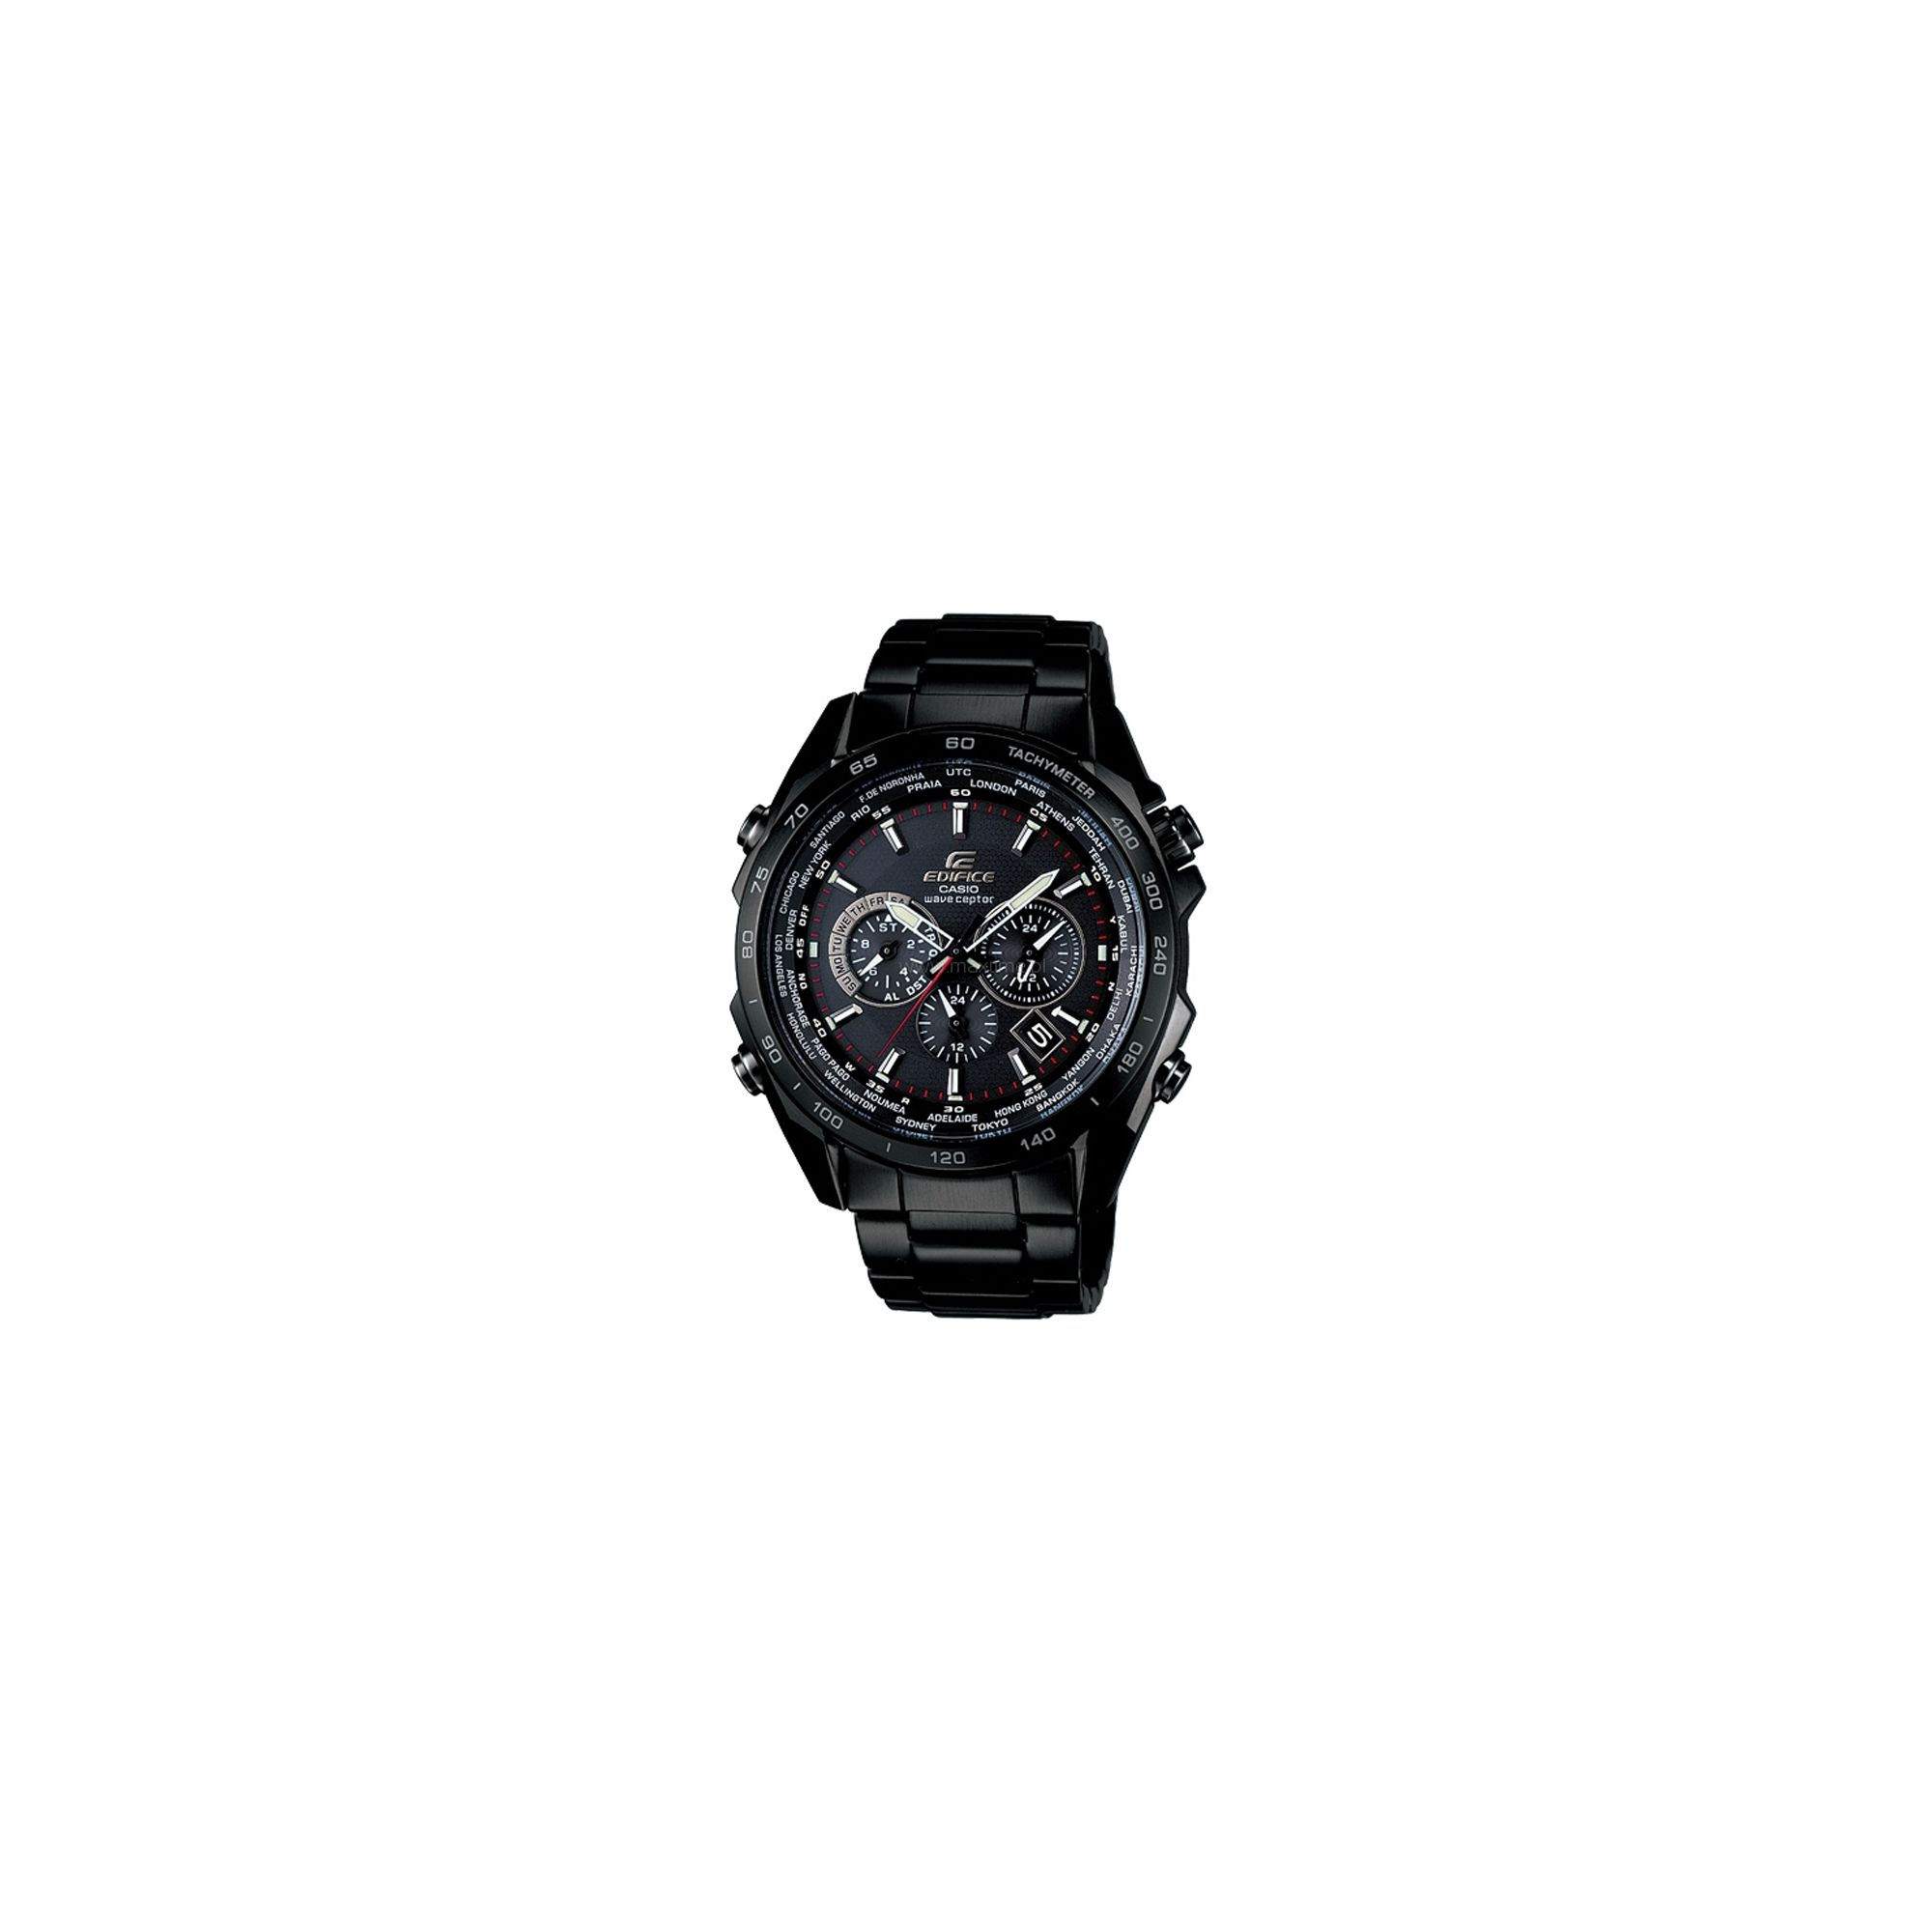 Casio Gents Edifice Alarm Chronograph Watch EQW-M600DC-1AER at Tesco Direct